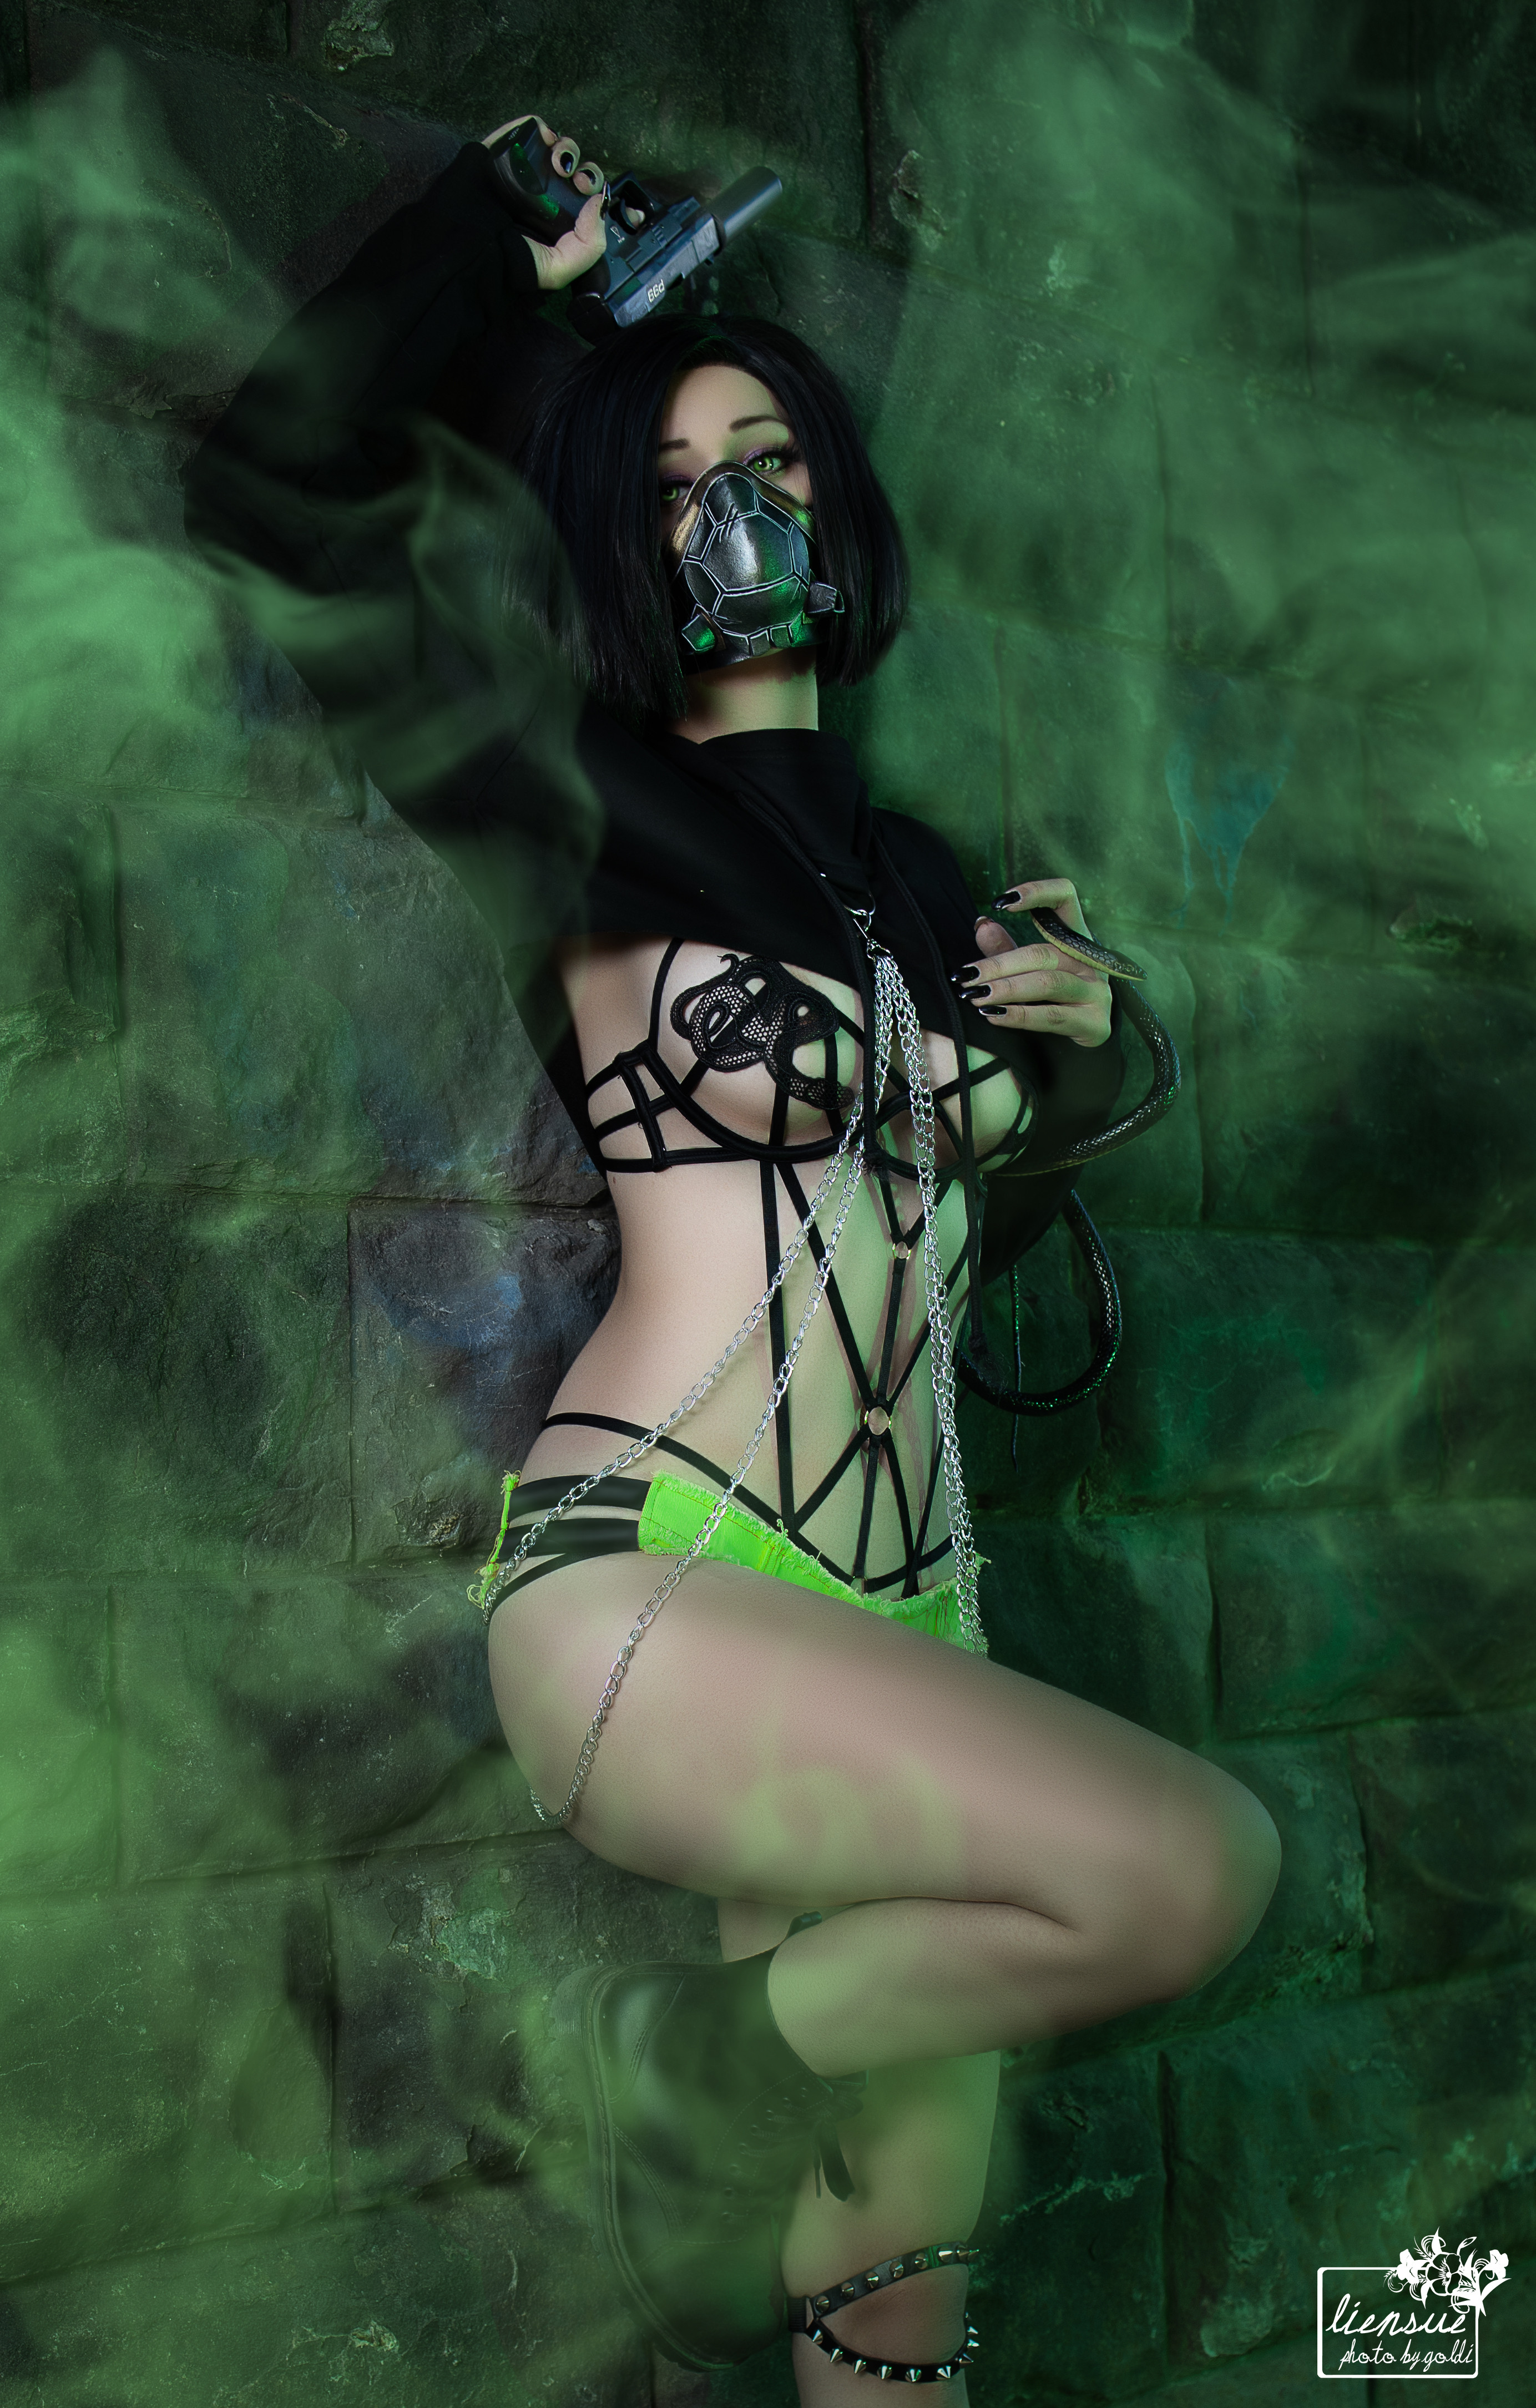 Viper From Valorant By LienSue